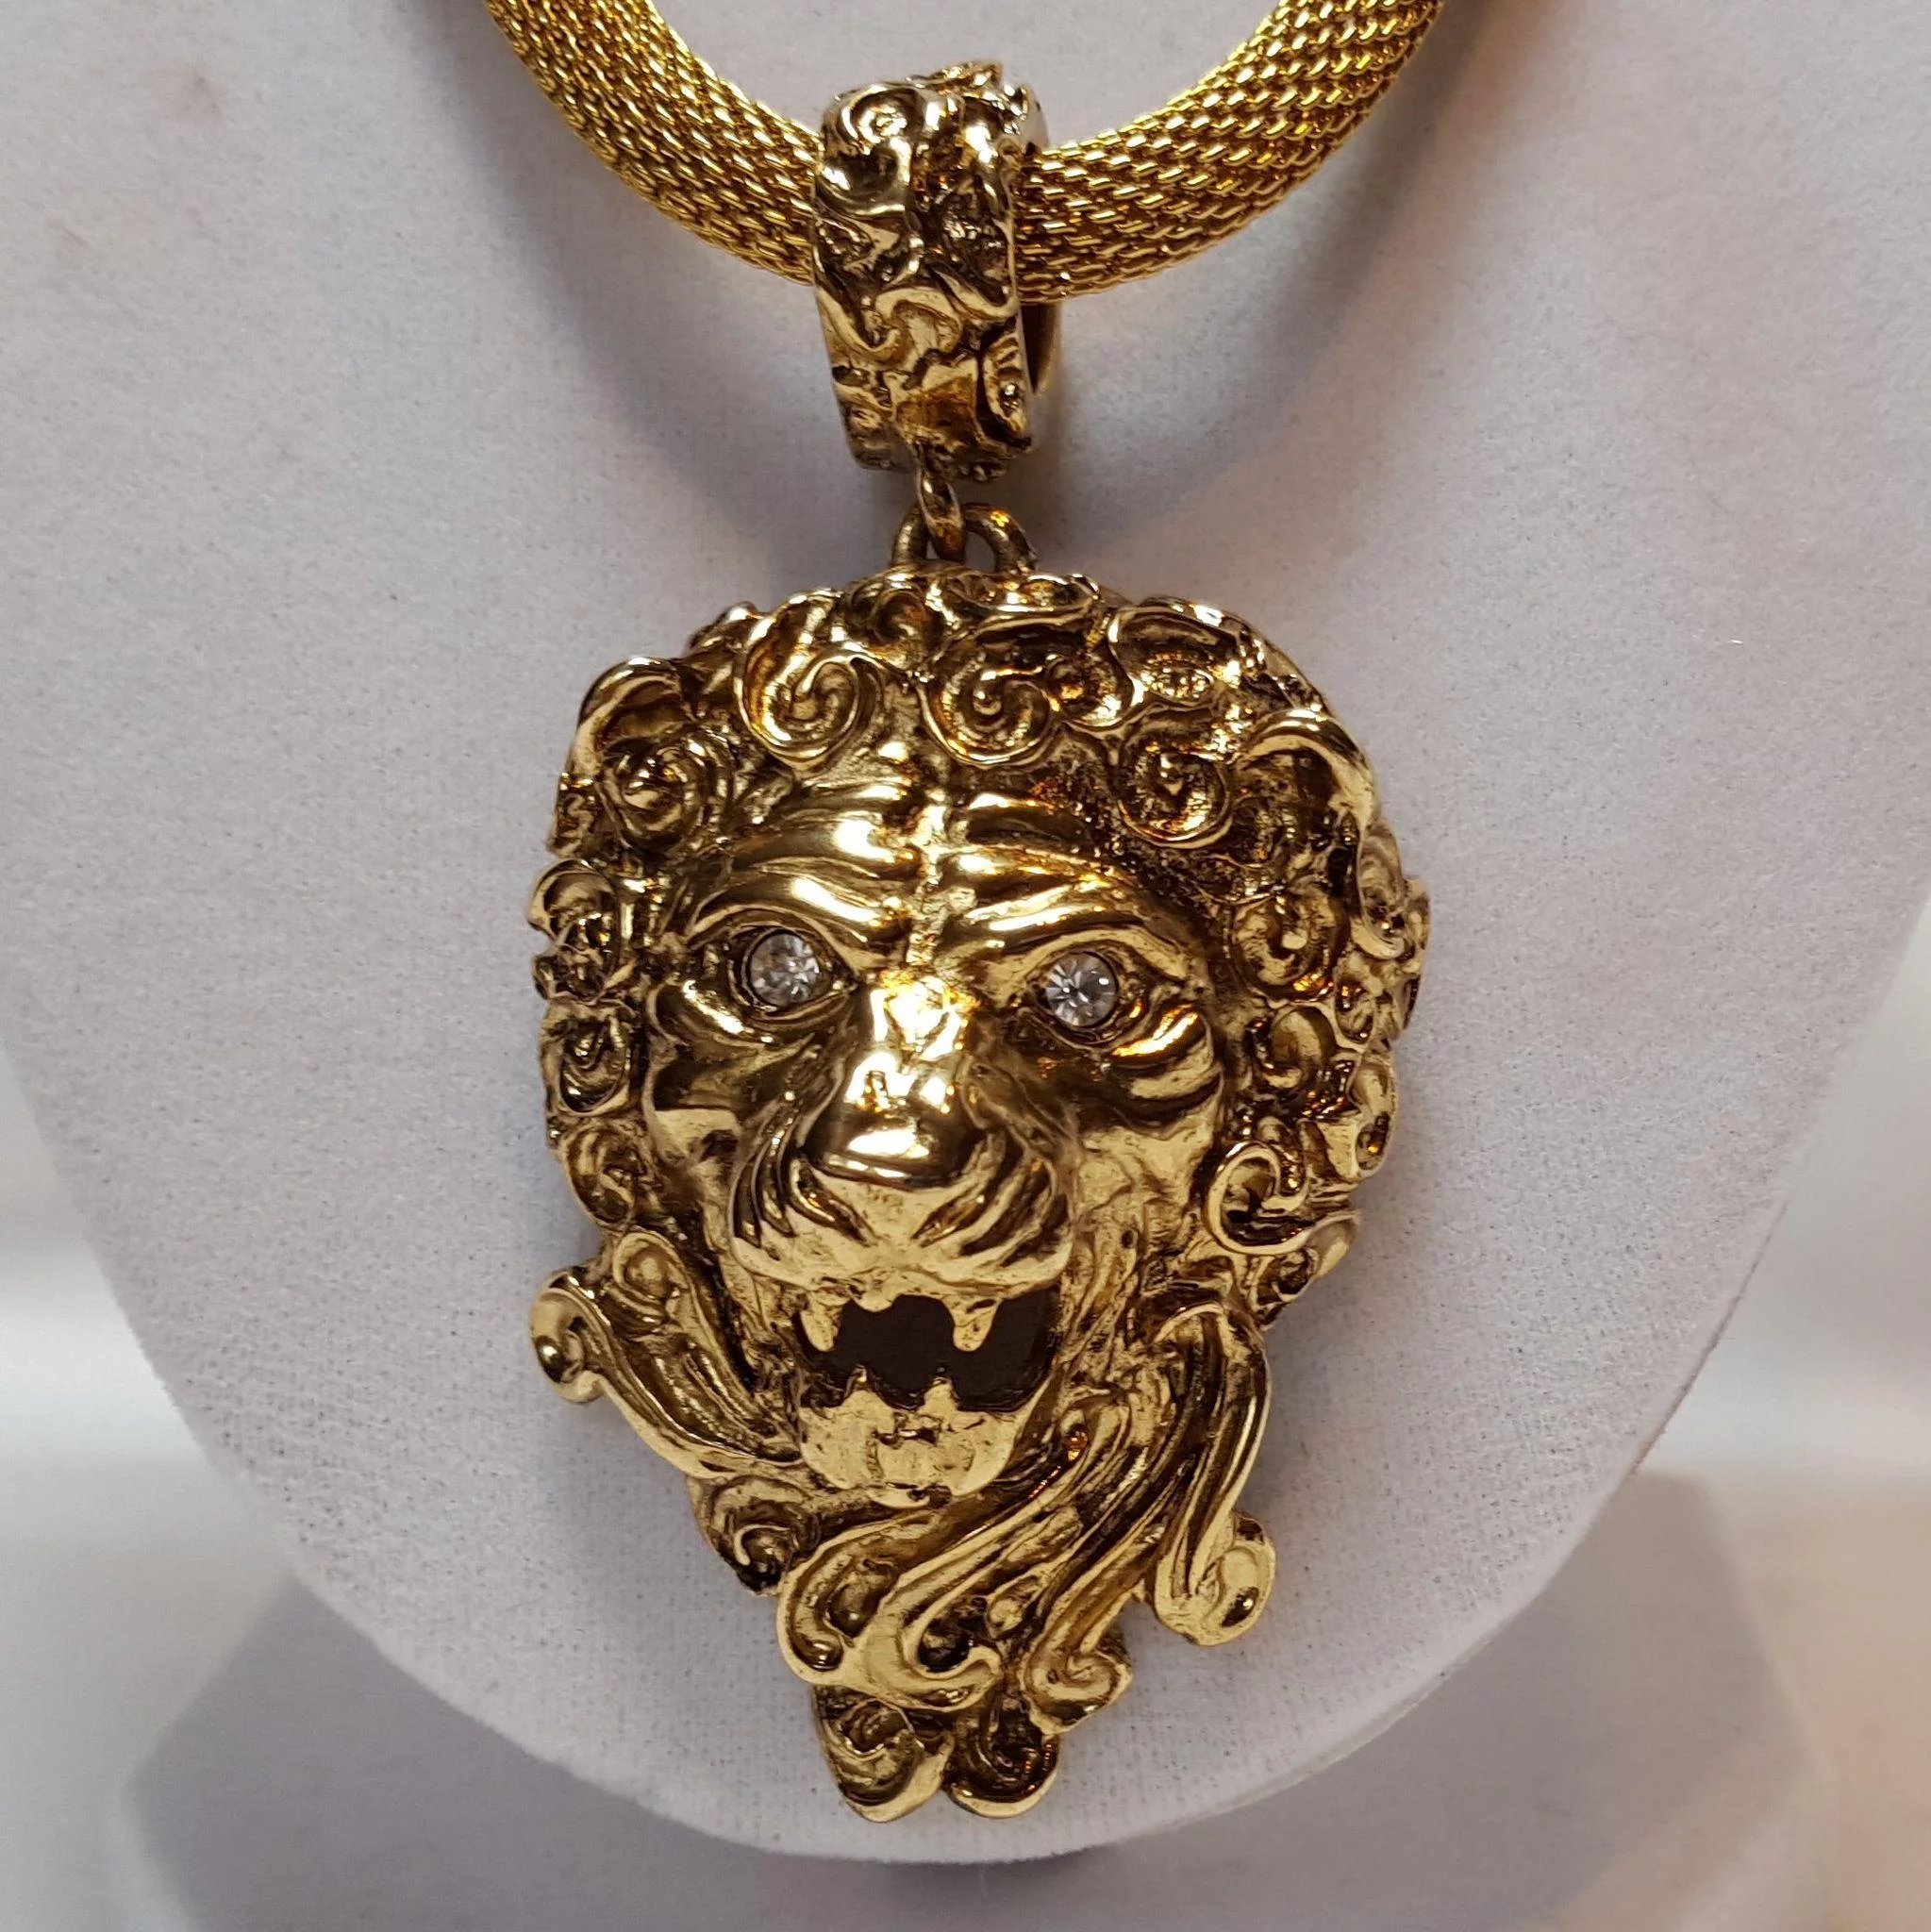 animal obj stl dwg pendants jewelry max model print head lion fbx cgtrader models pendant